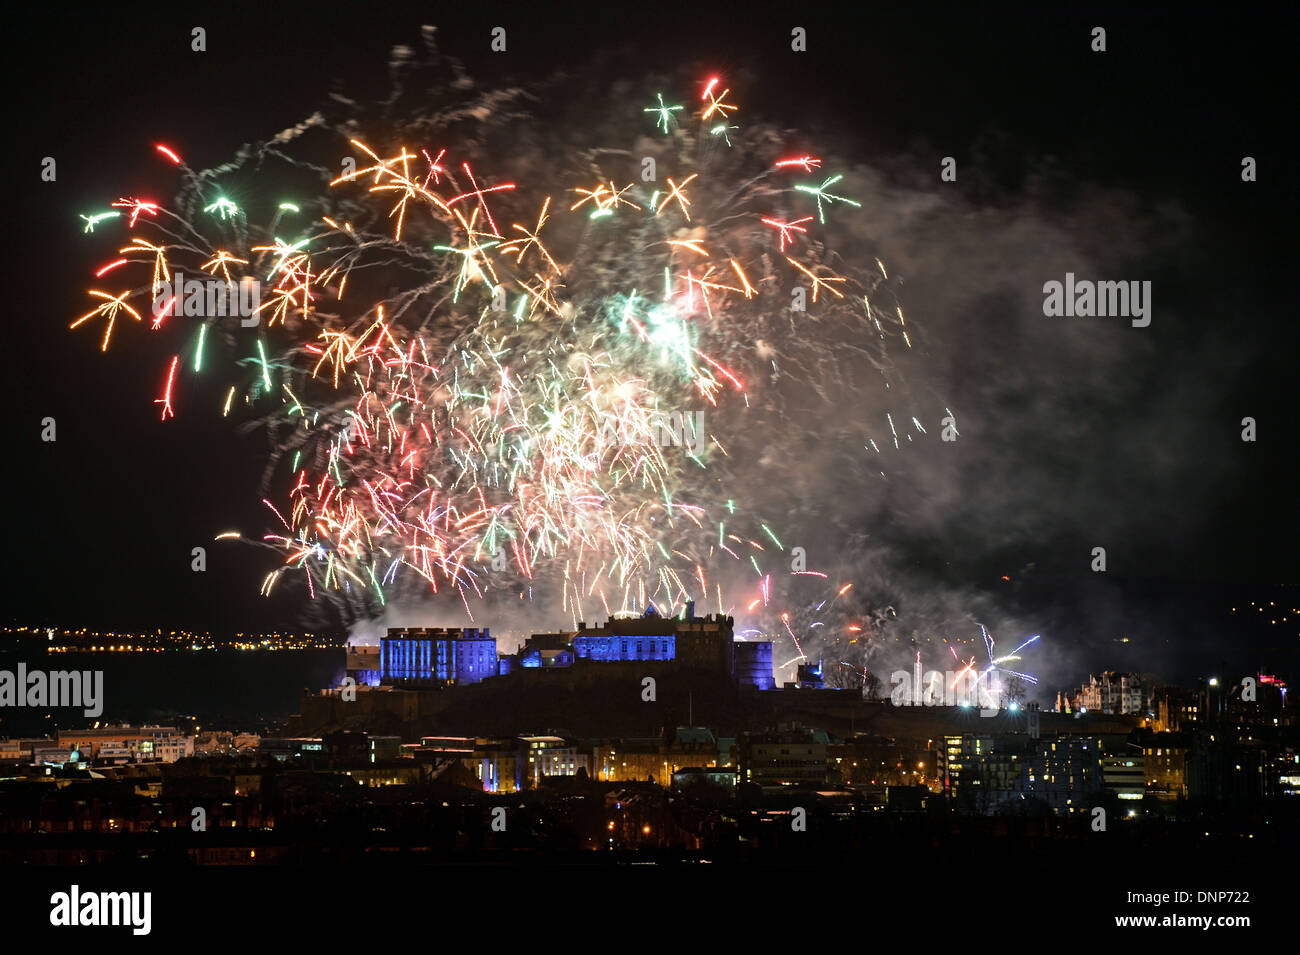 Edinburgh New Year Stock Photos   Edinburgh New Year Stock Images     New Year fireworks above Edinburgh Castle herald in 2014 as viewed from  Blackford Hill